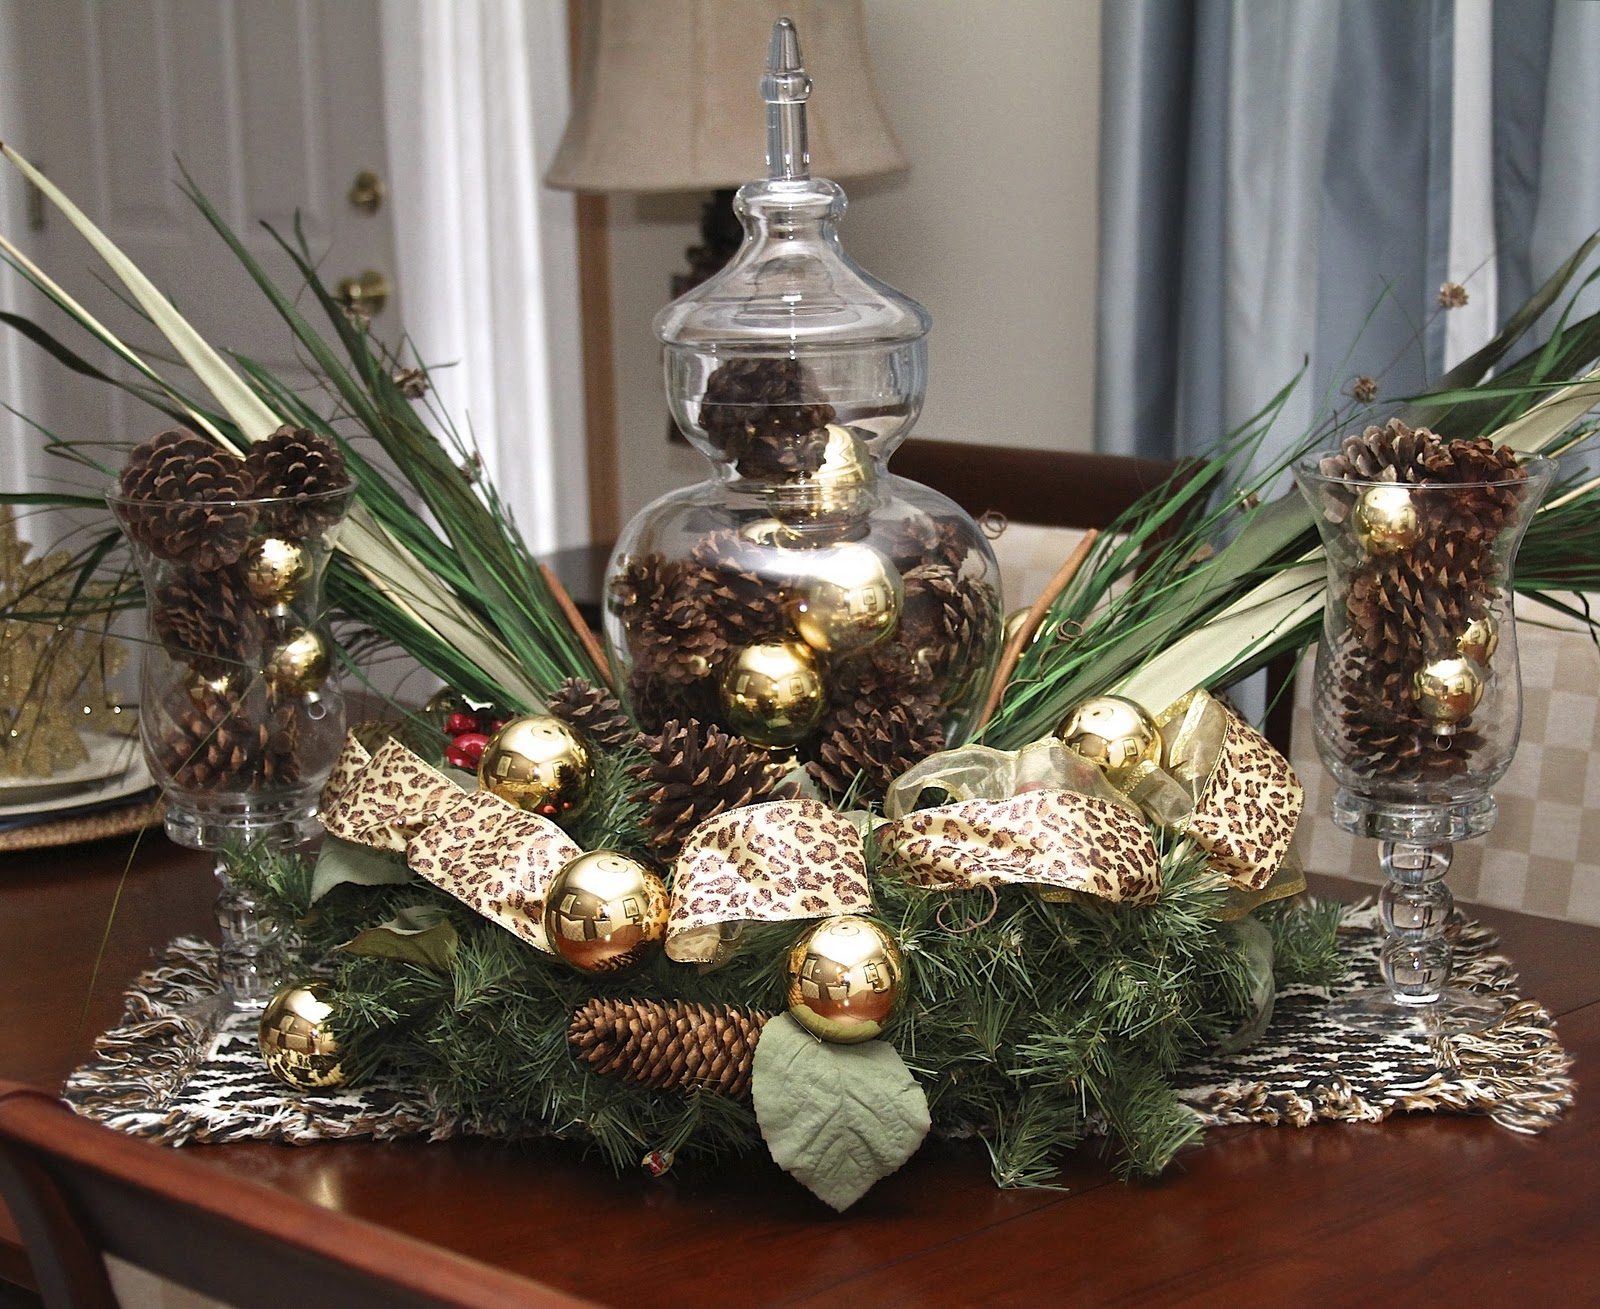 To Dress Up The Wreath I Added Additional Pine Cones, Ornaments, Ribbon &  Greenery I Then Flanked Each Side Of The Centerpiece With Glass Vases